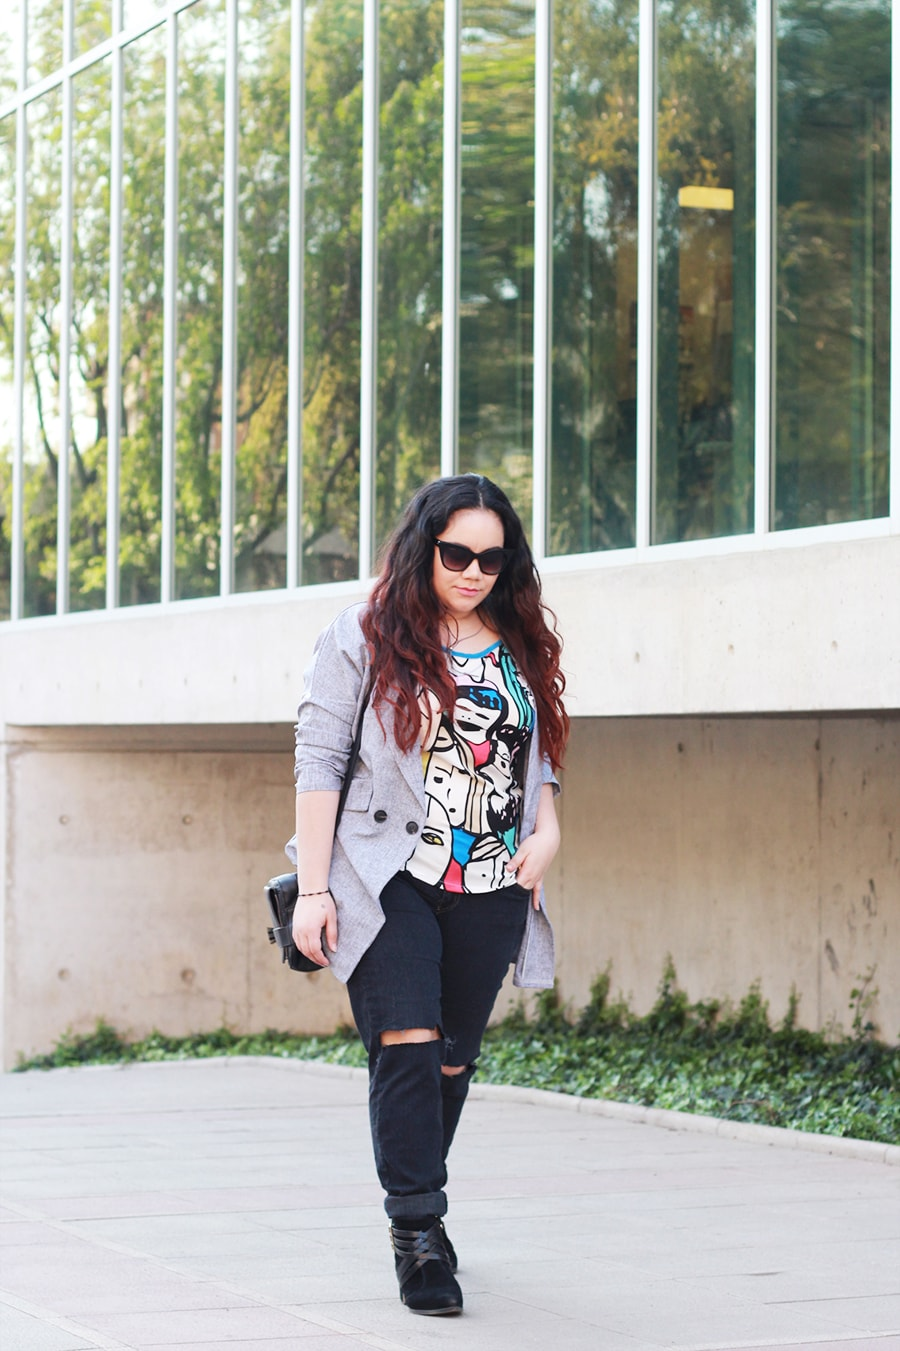 Busted knee jeans and graphic prints - blogger mexicana - plus size | Golden Strokes